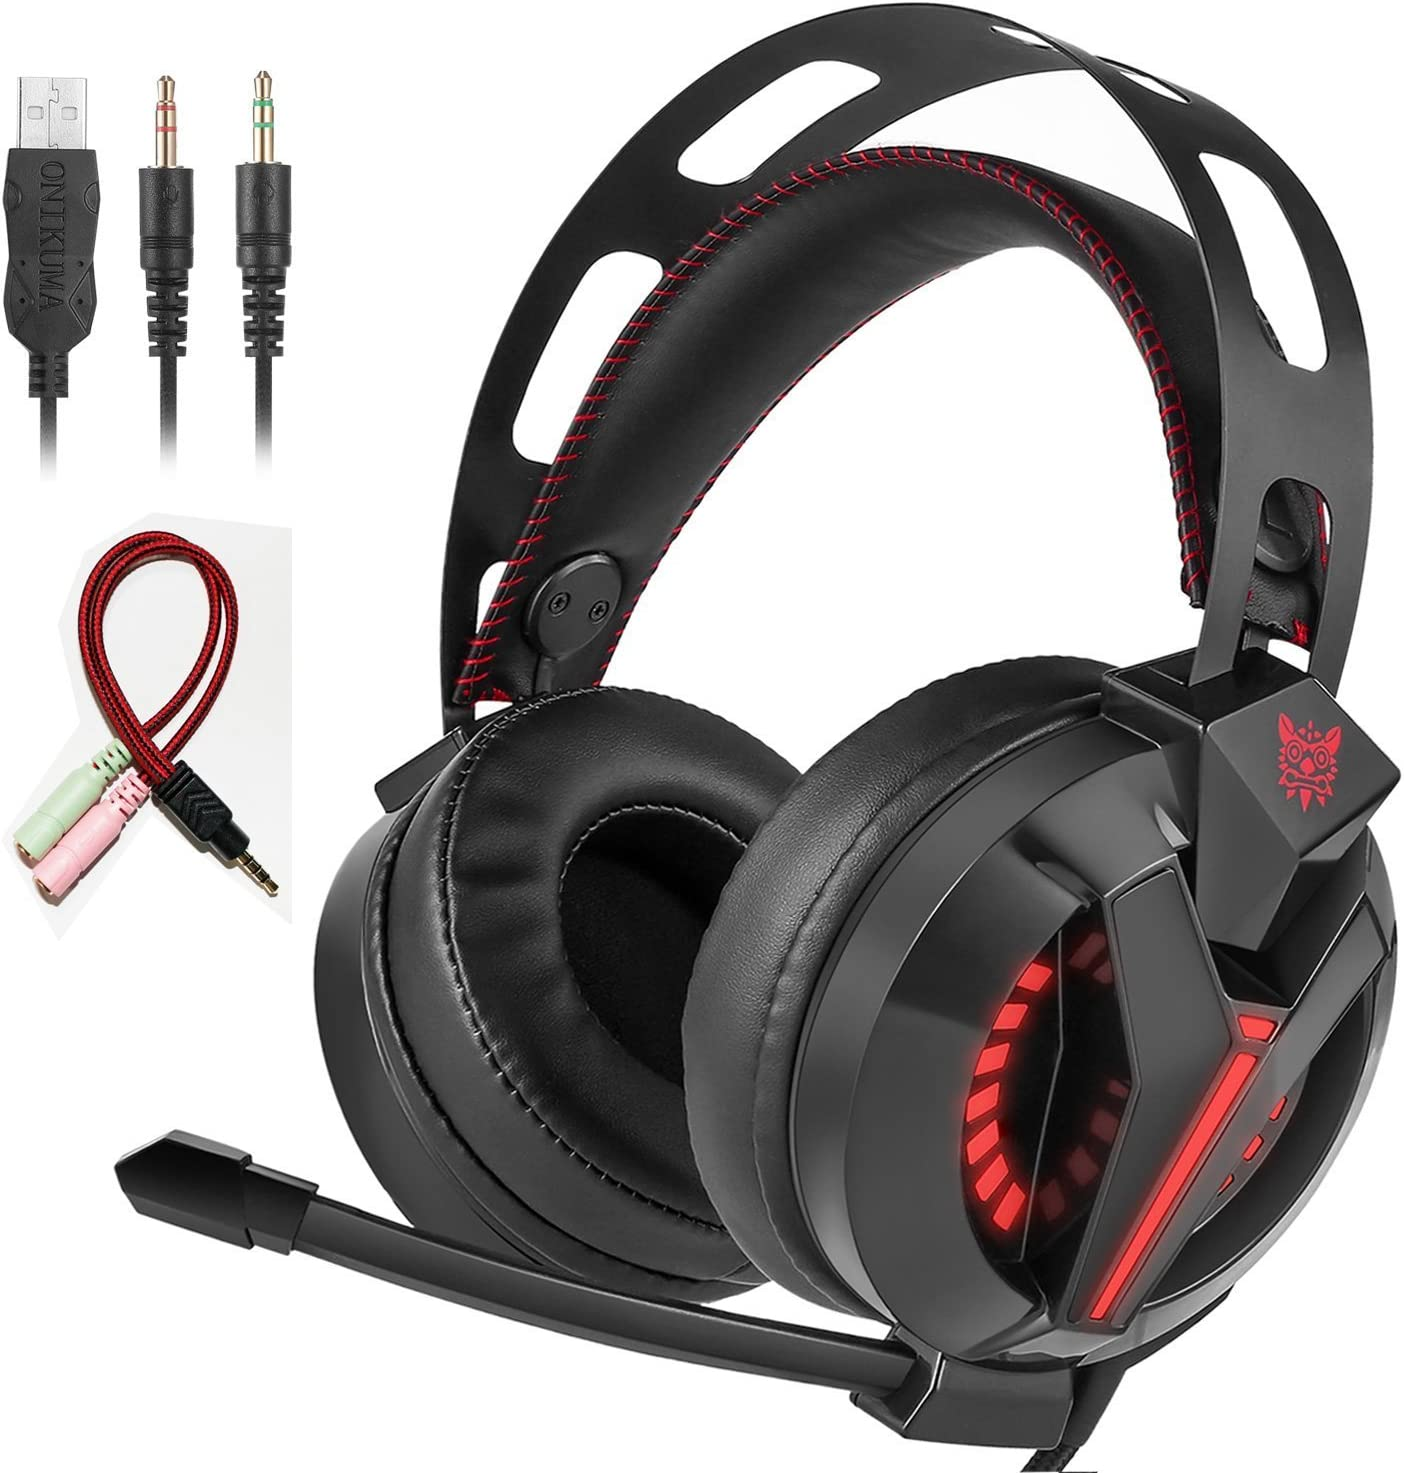 VIKMOSH Gaming Headset for Xbox One,PS4, Noise Cancellation Surround Sound Over Ear Headphones with Mic Mute and Led Light,Wired 3.5MM Jack Gaming Headphones for PC,Laptops,Mac,Ipad,iPhone 5,6 Black